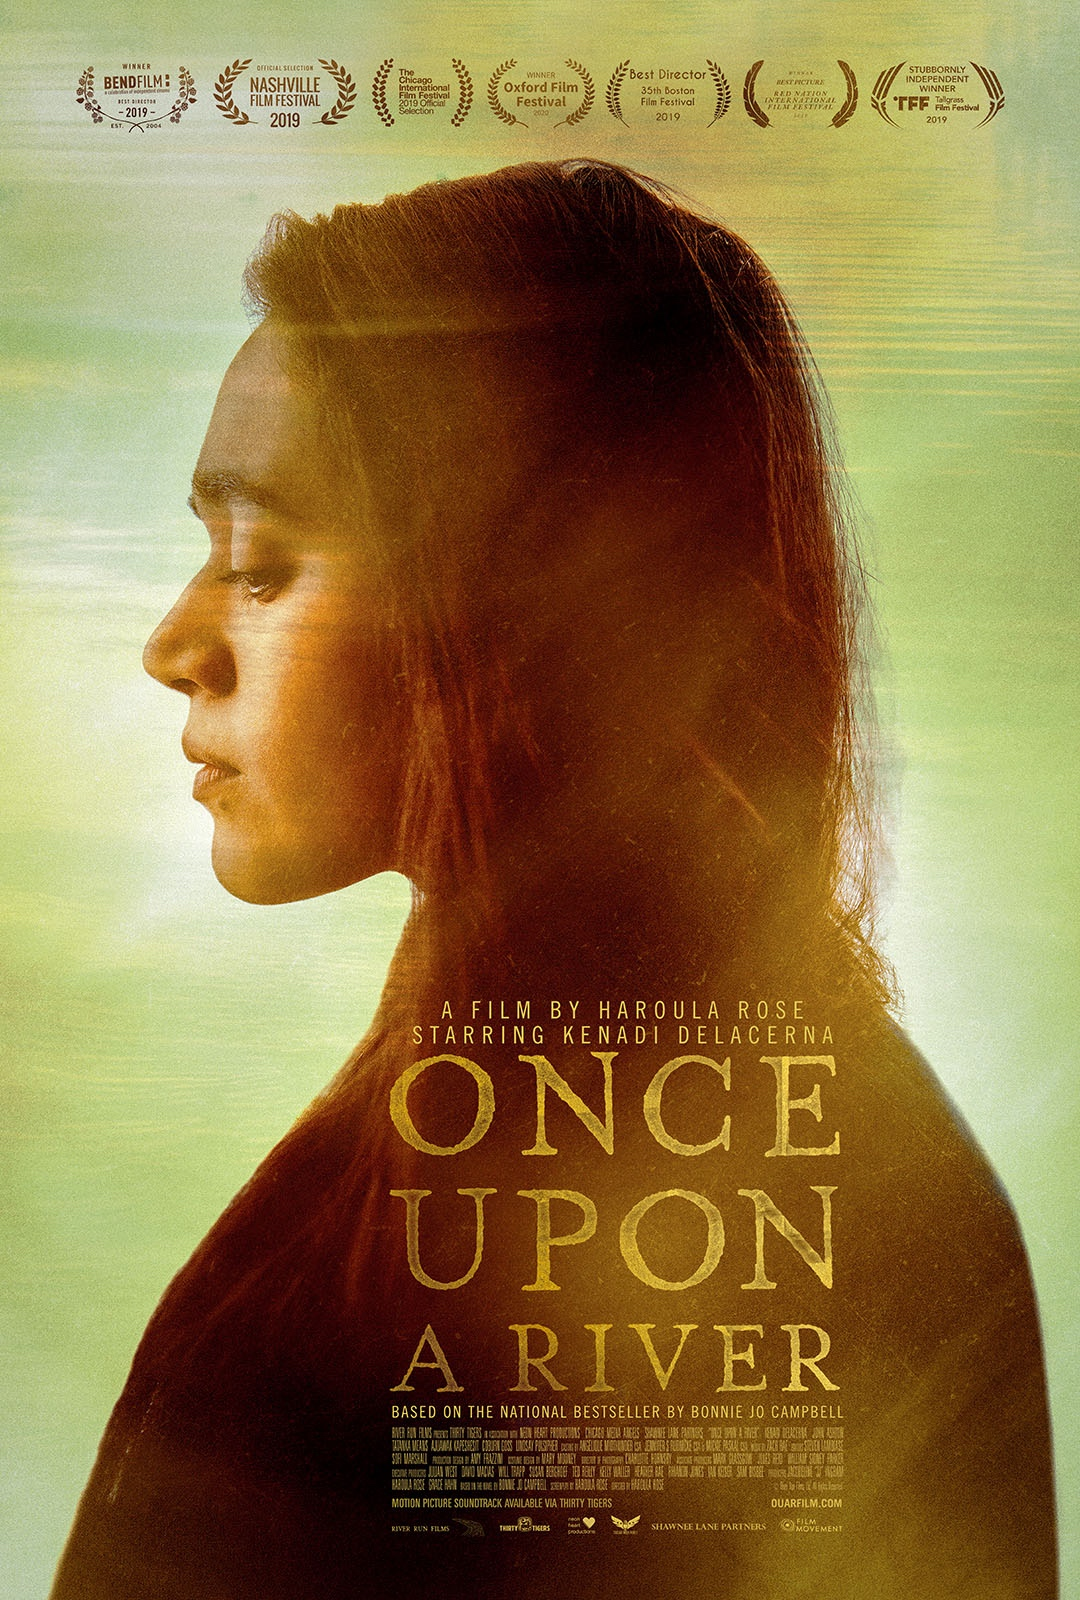 Poster for Once Upon a River